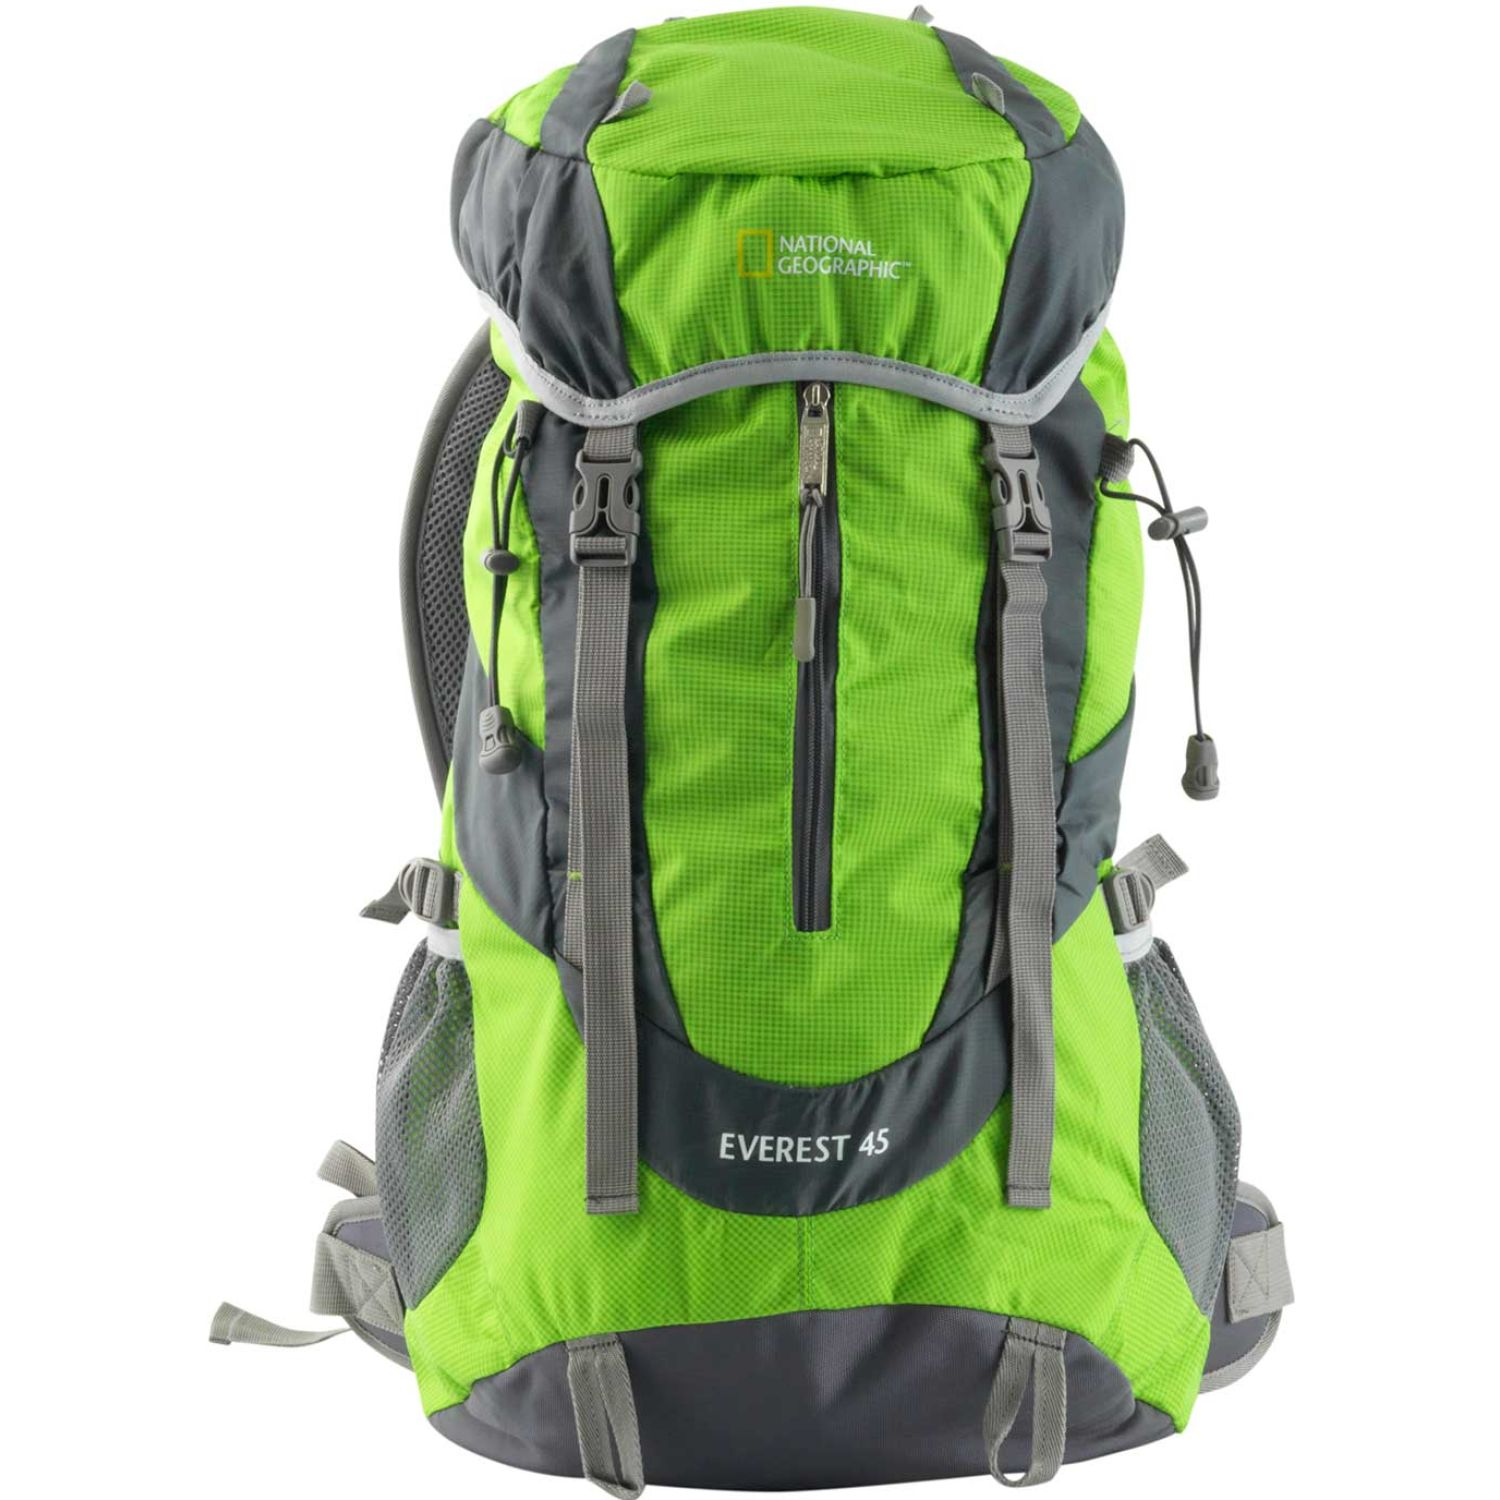 NATIONAL GEOGRAPHIC mochila everest 45 litros Verde Mochilas Multipropósitos